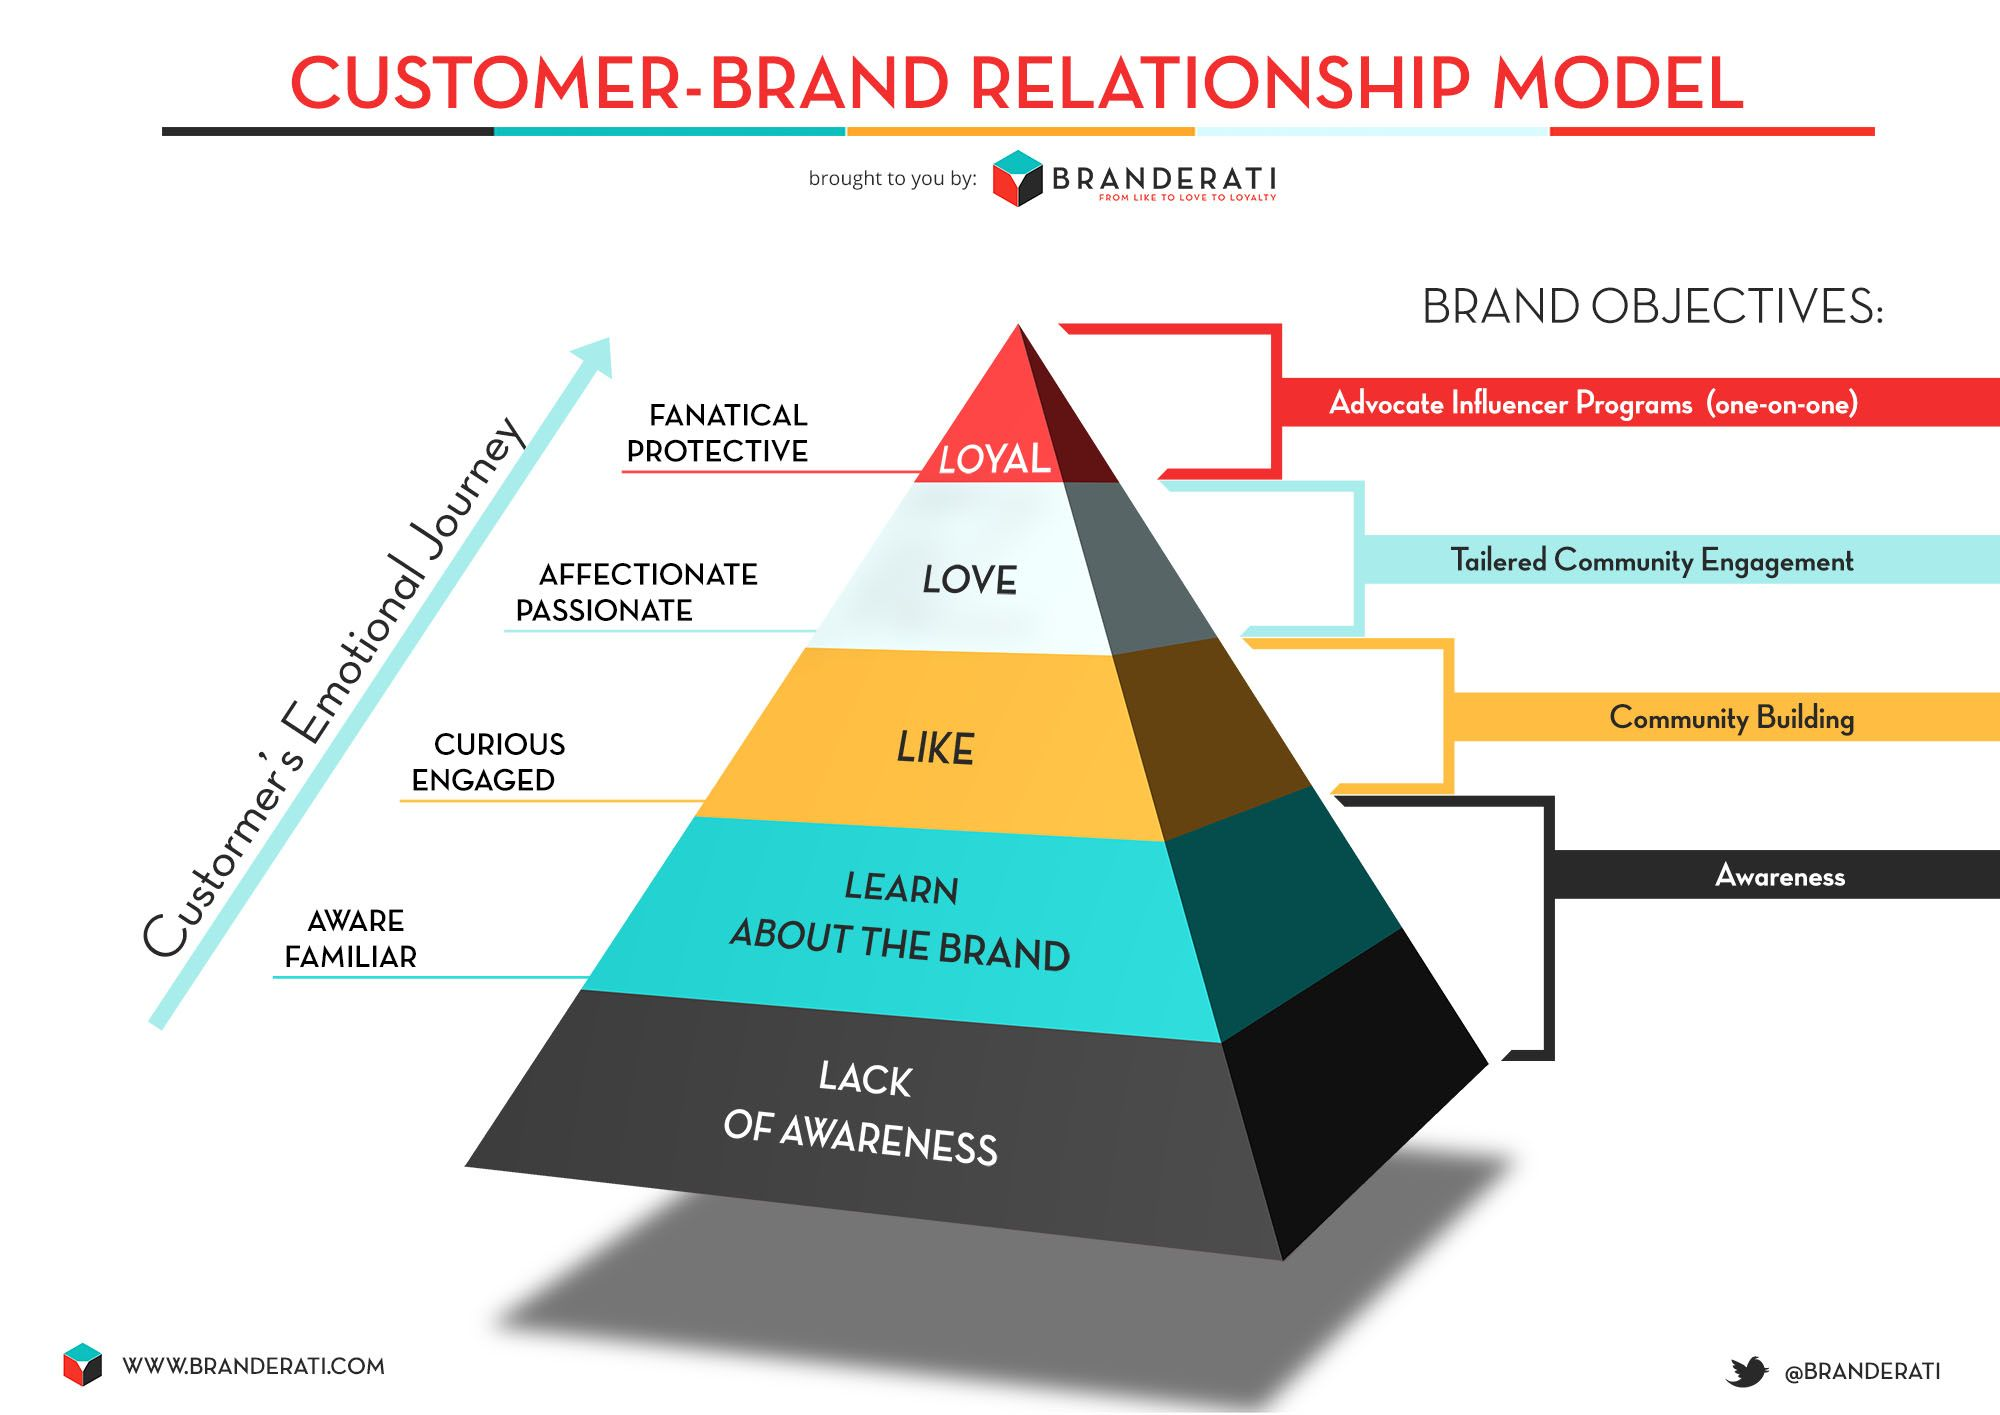 Check our pyramid of the customerbrand relationship model